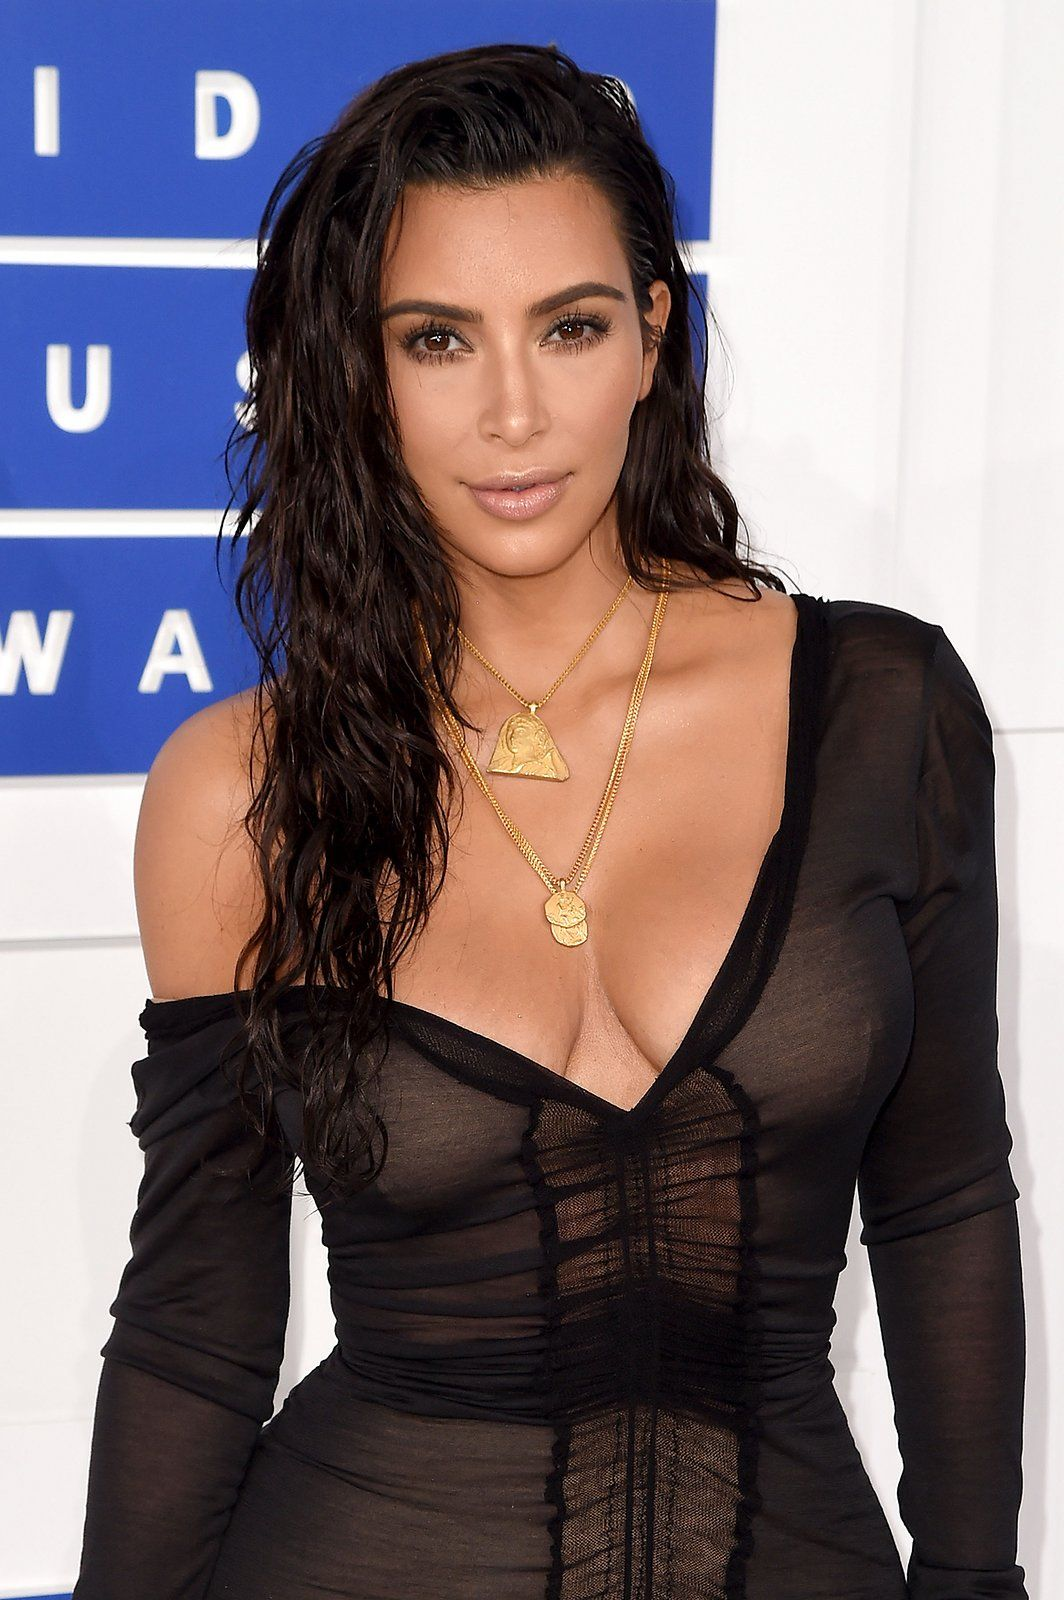 VMAs 2016 The Best Beauty Looks on the Red Carpet